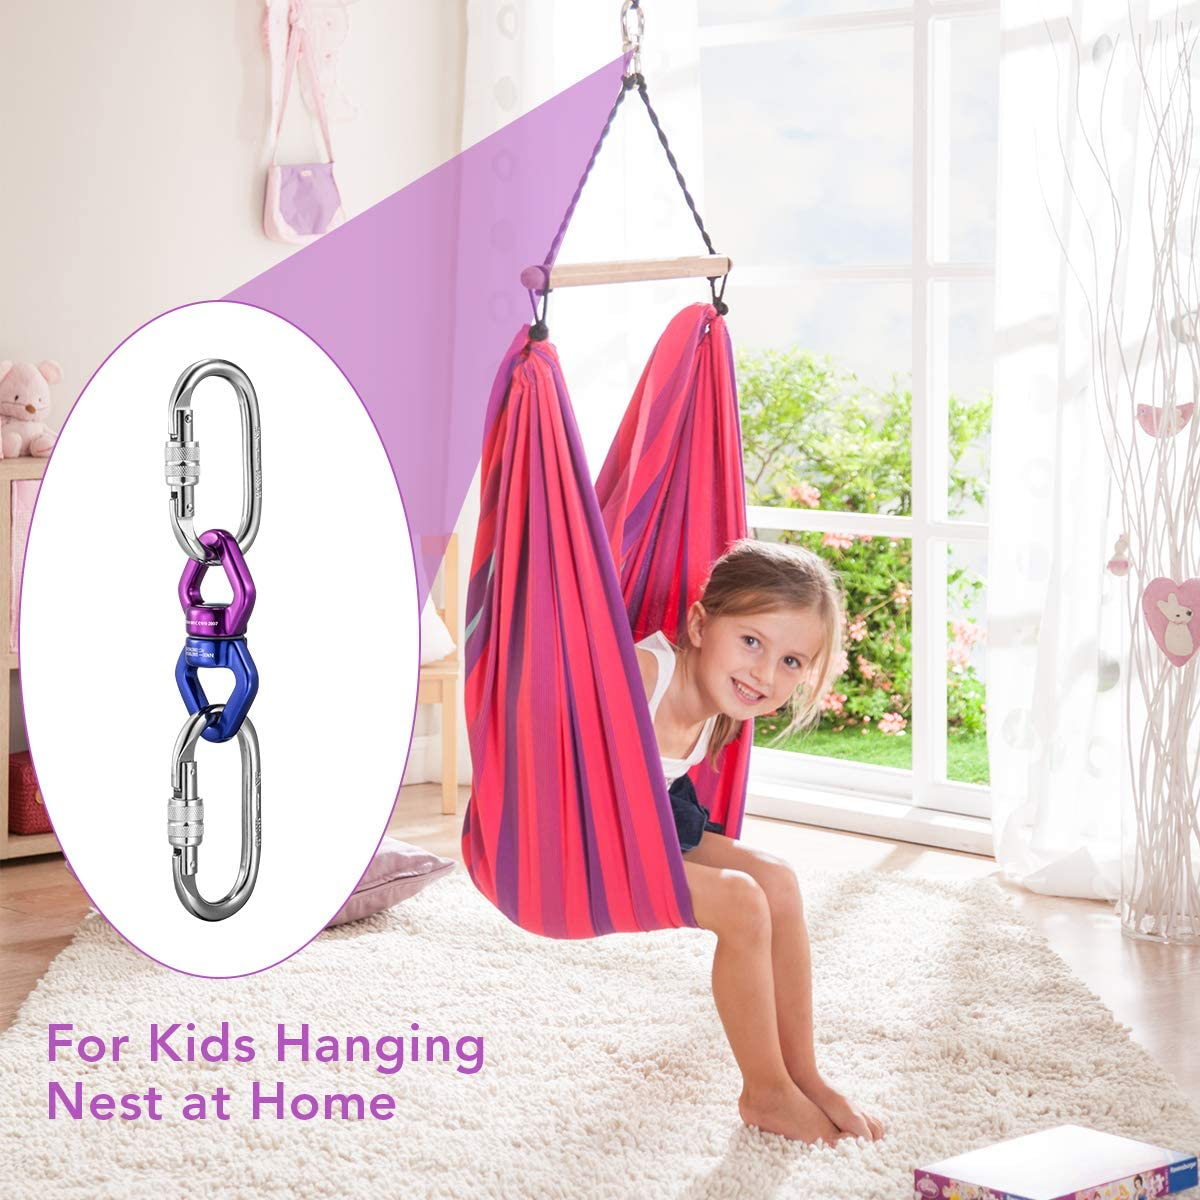 Safest Climbing Rotational Device Hanging Spinner Childrens Pod Swing Coralov Swing Swivel 30 KN with 2 Carabiner for Aerial Silks Dance Spider Web Tree Swing Hanging Hammock